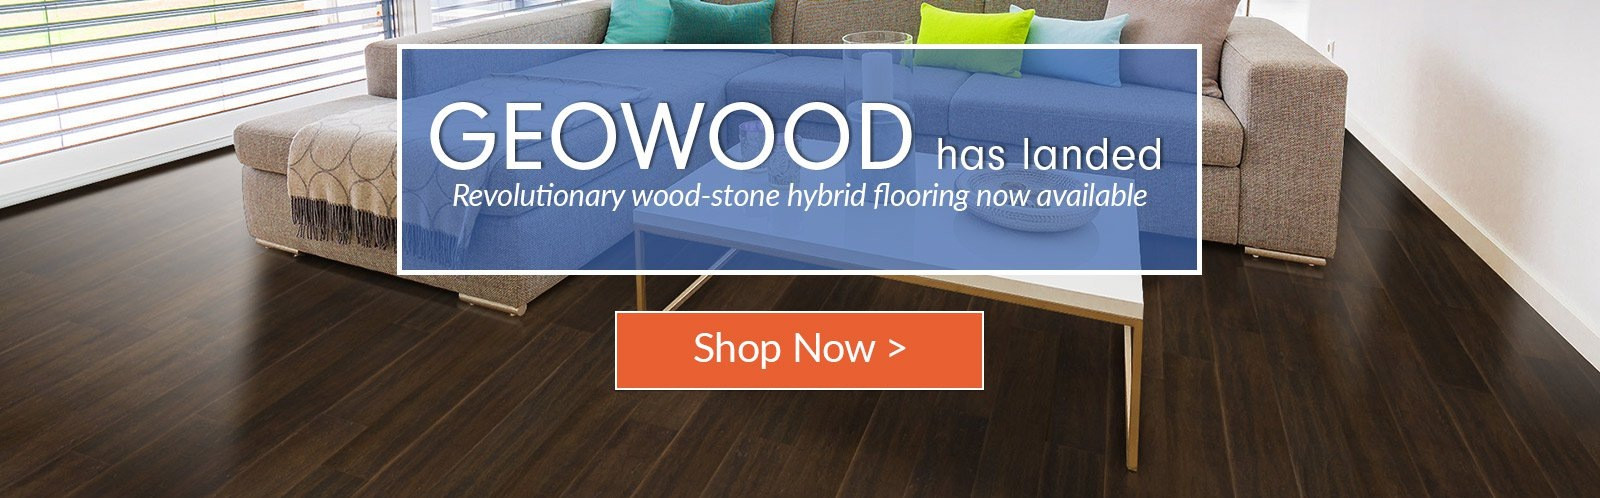 Wide Plank Hardwood Flooring Lowes Of Unfinished Hickory Flooring Fresh 13 New Unfinished Hardwood Inside Green Building Construction Materials and Home Decor Cali Bamboo